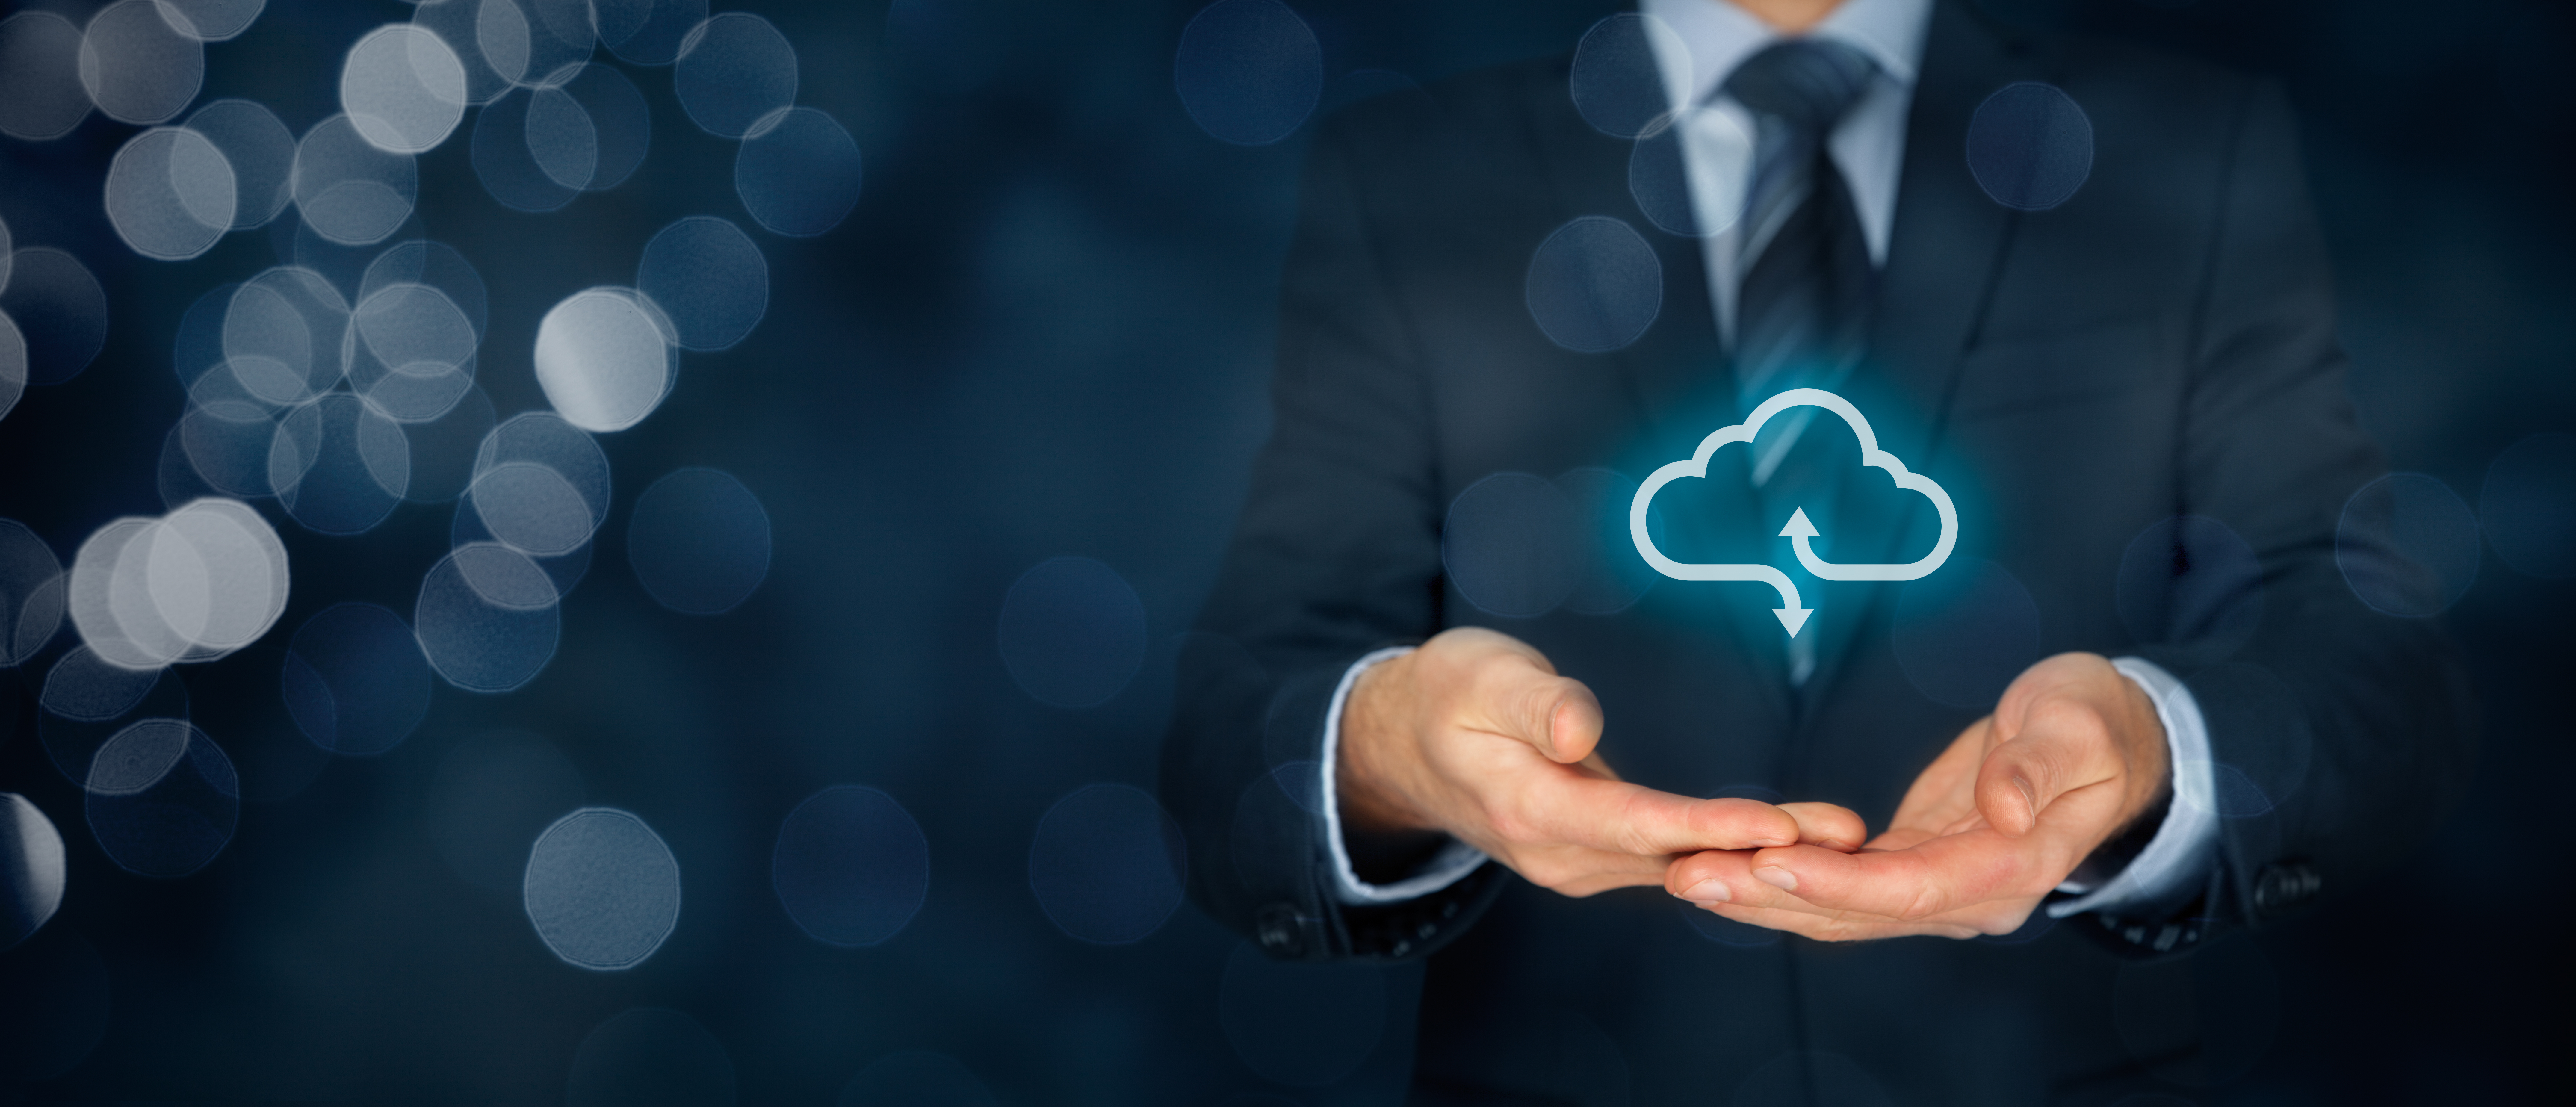 The Productivity Benefits of Using Built-in Cloud Storage